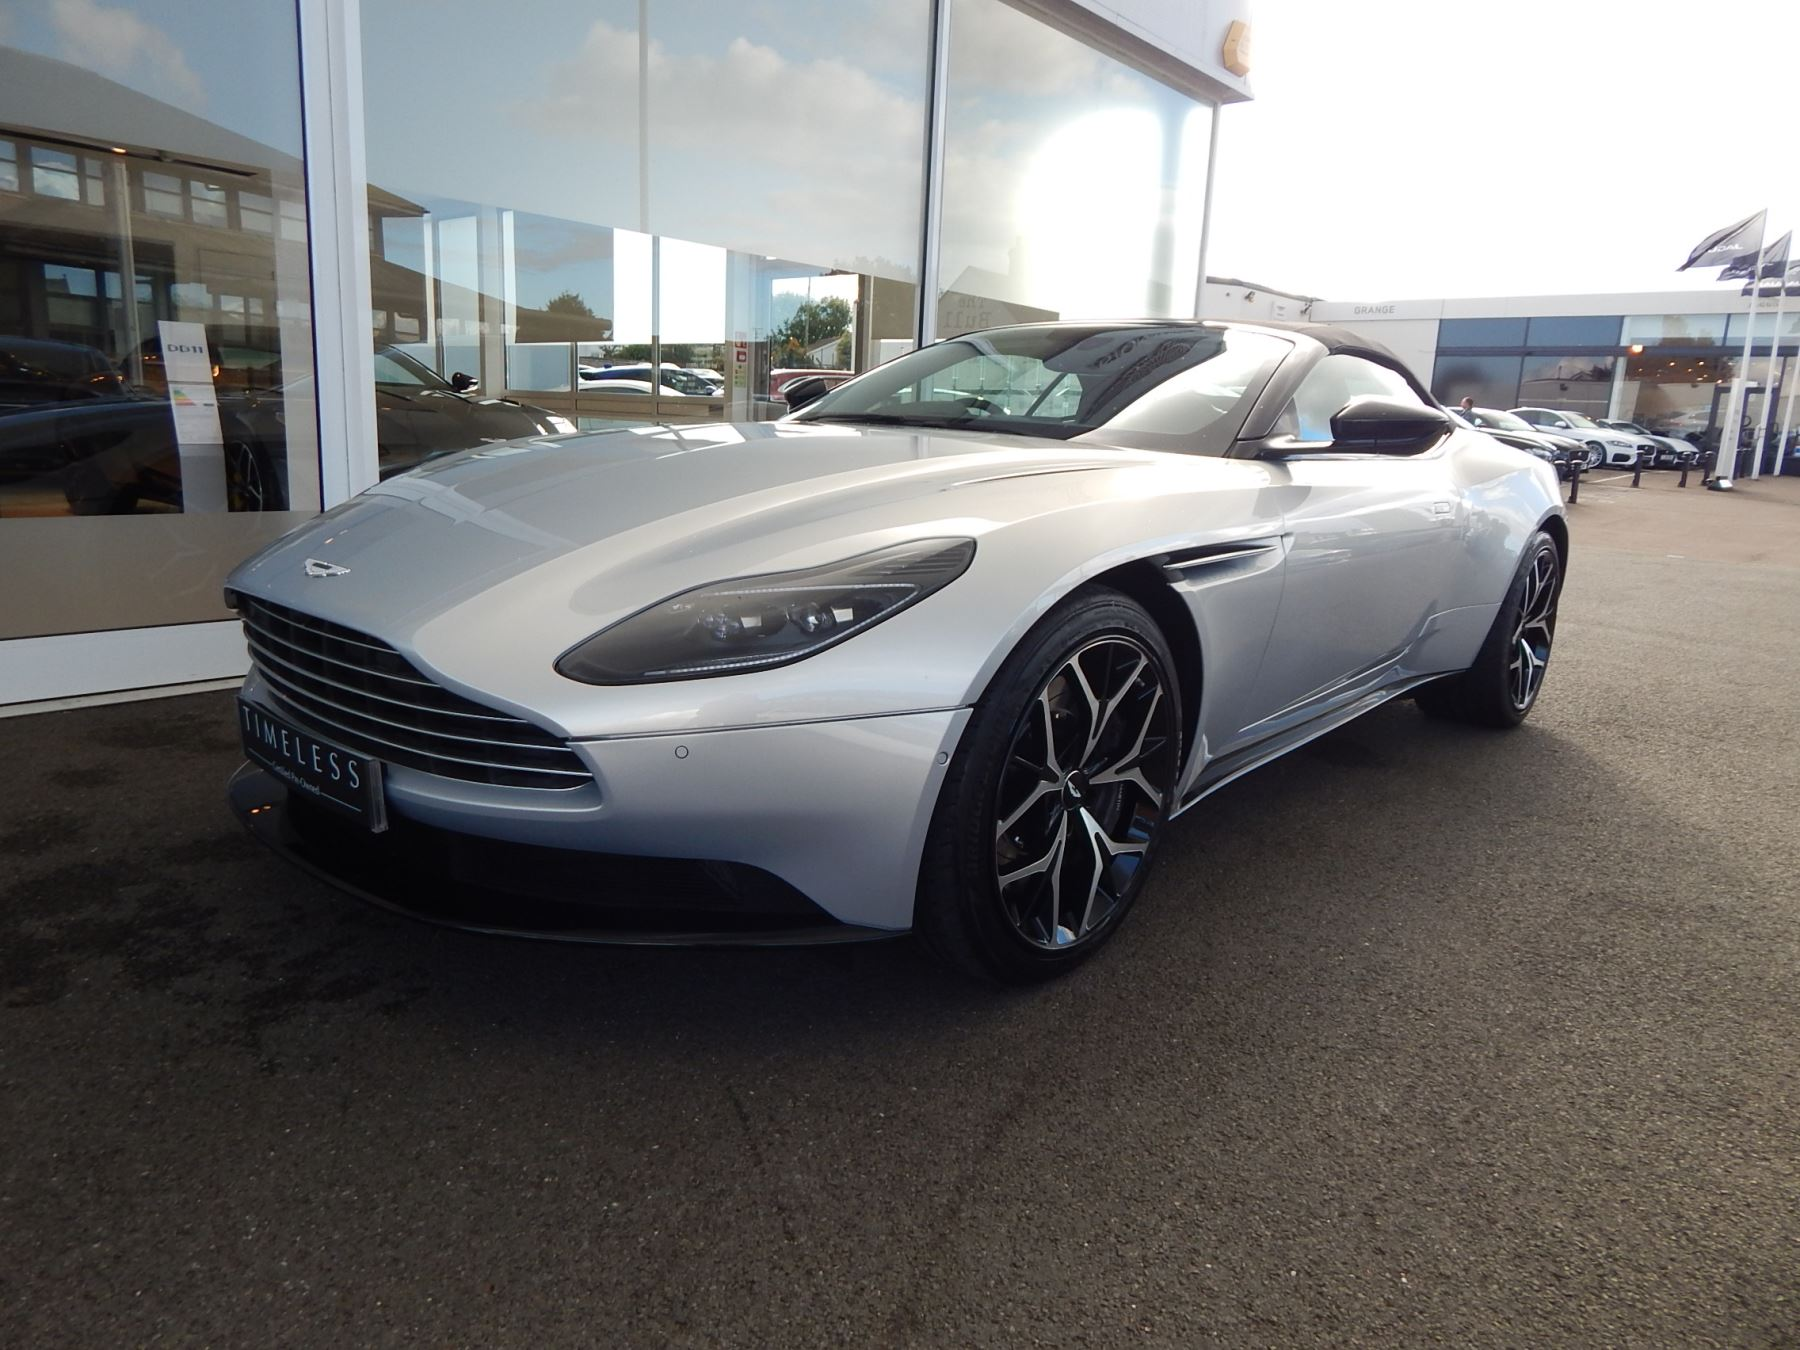 Aston Martin DB11 Volante 4.0 V8 Twin Turbo image 8